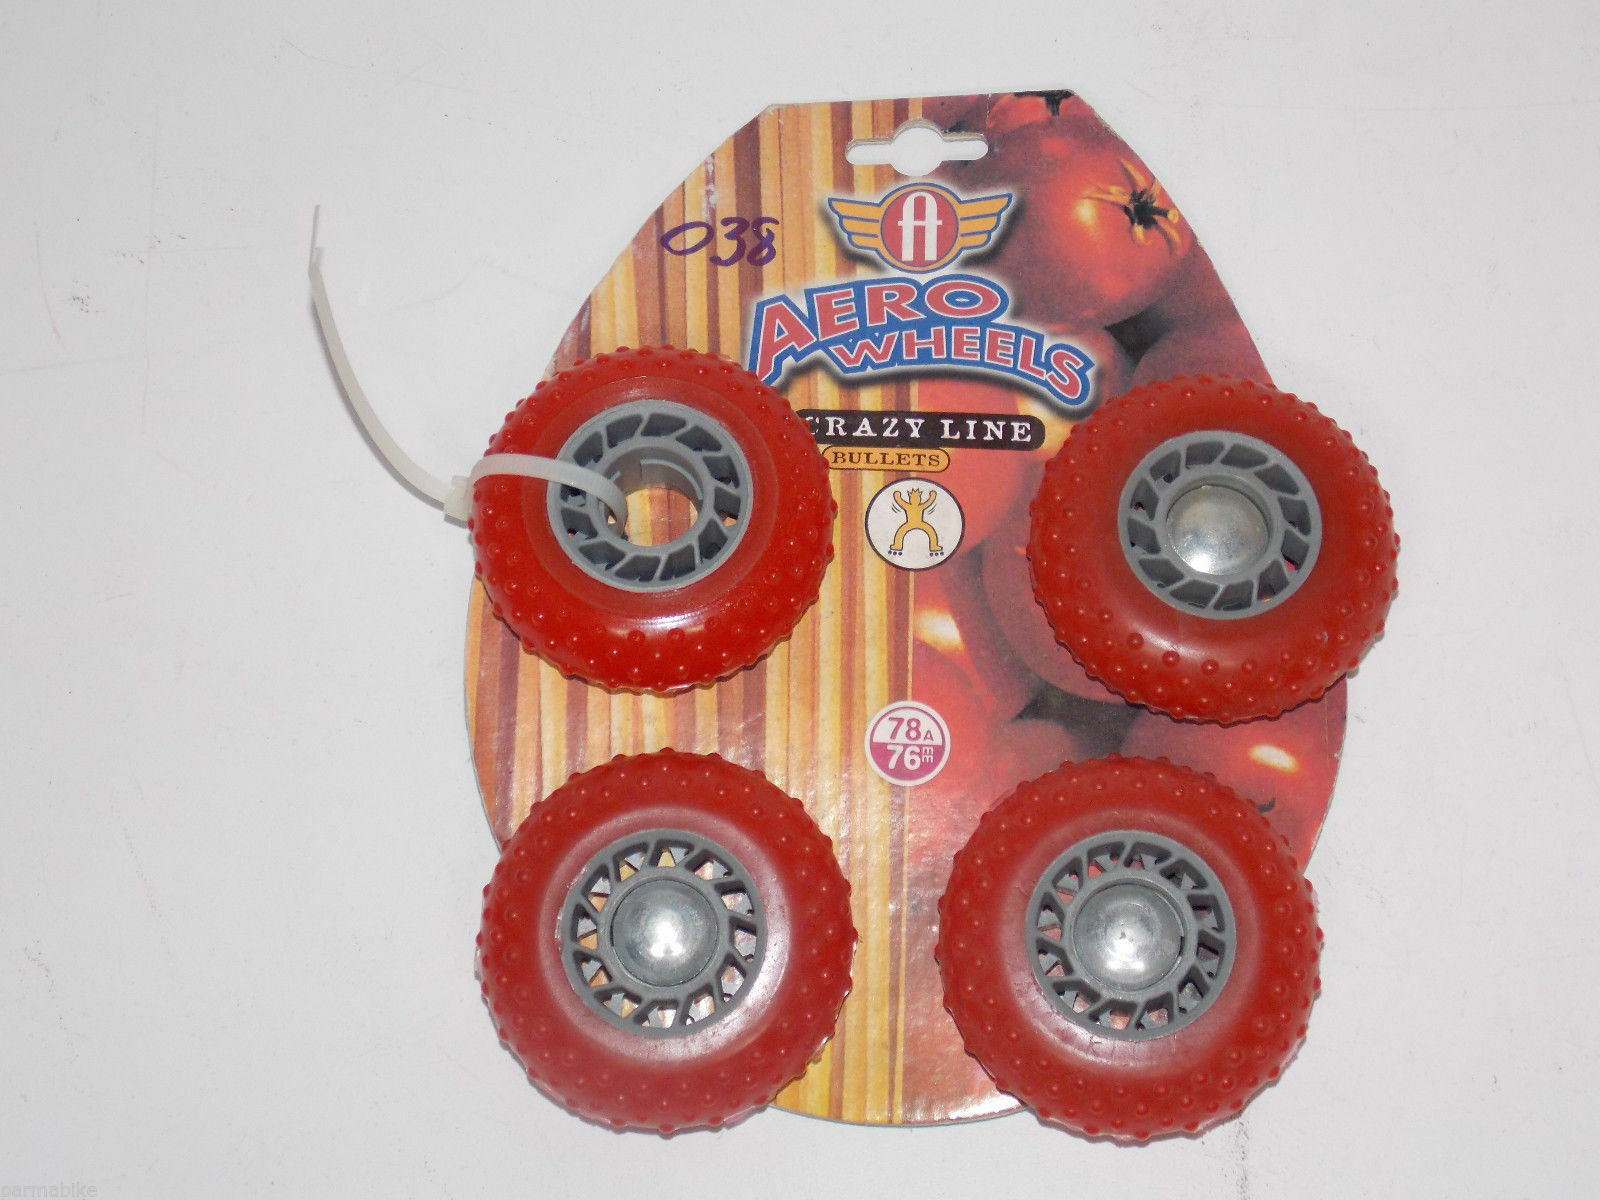 1980'S NEW 4 AERO WHEELS 78A 76MM ROLLER SKATE ROLLER 76MM BLADES IN LINE SKATING af043d